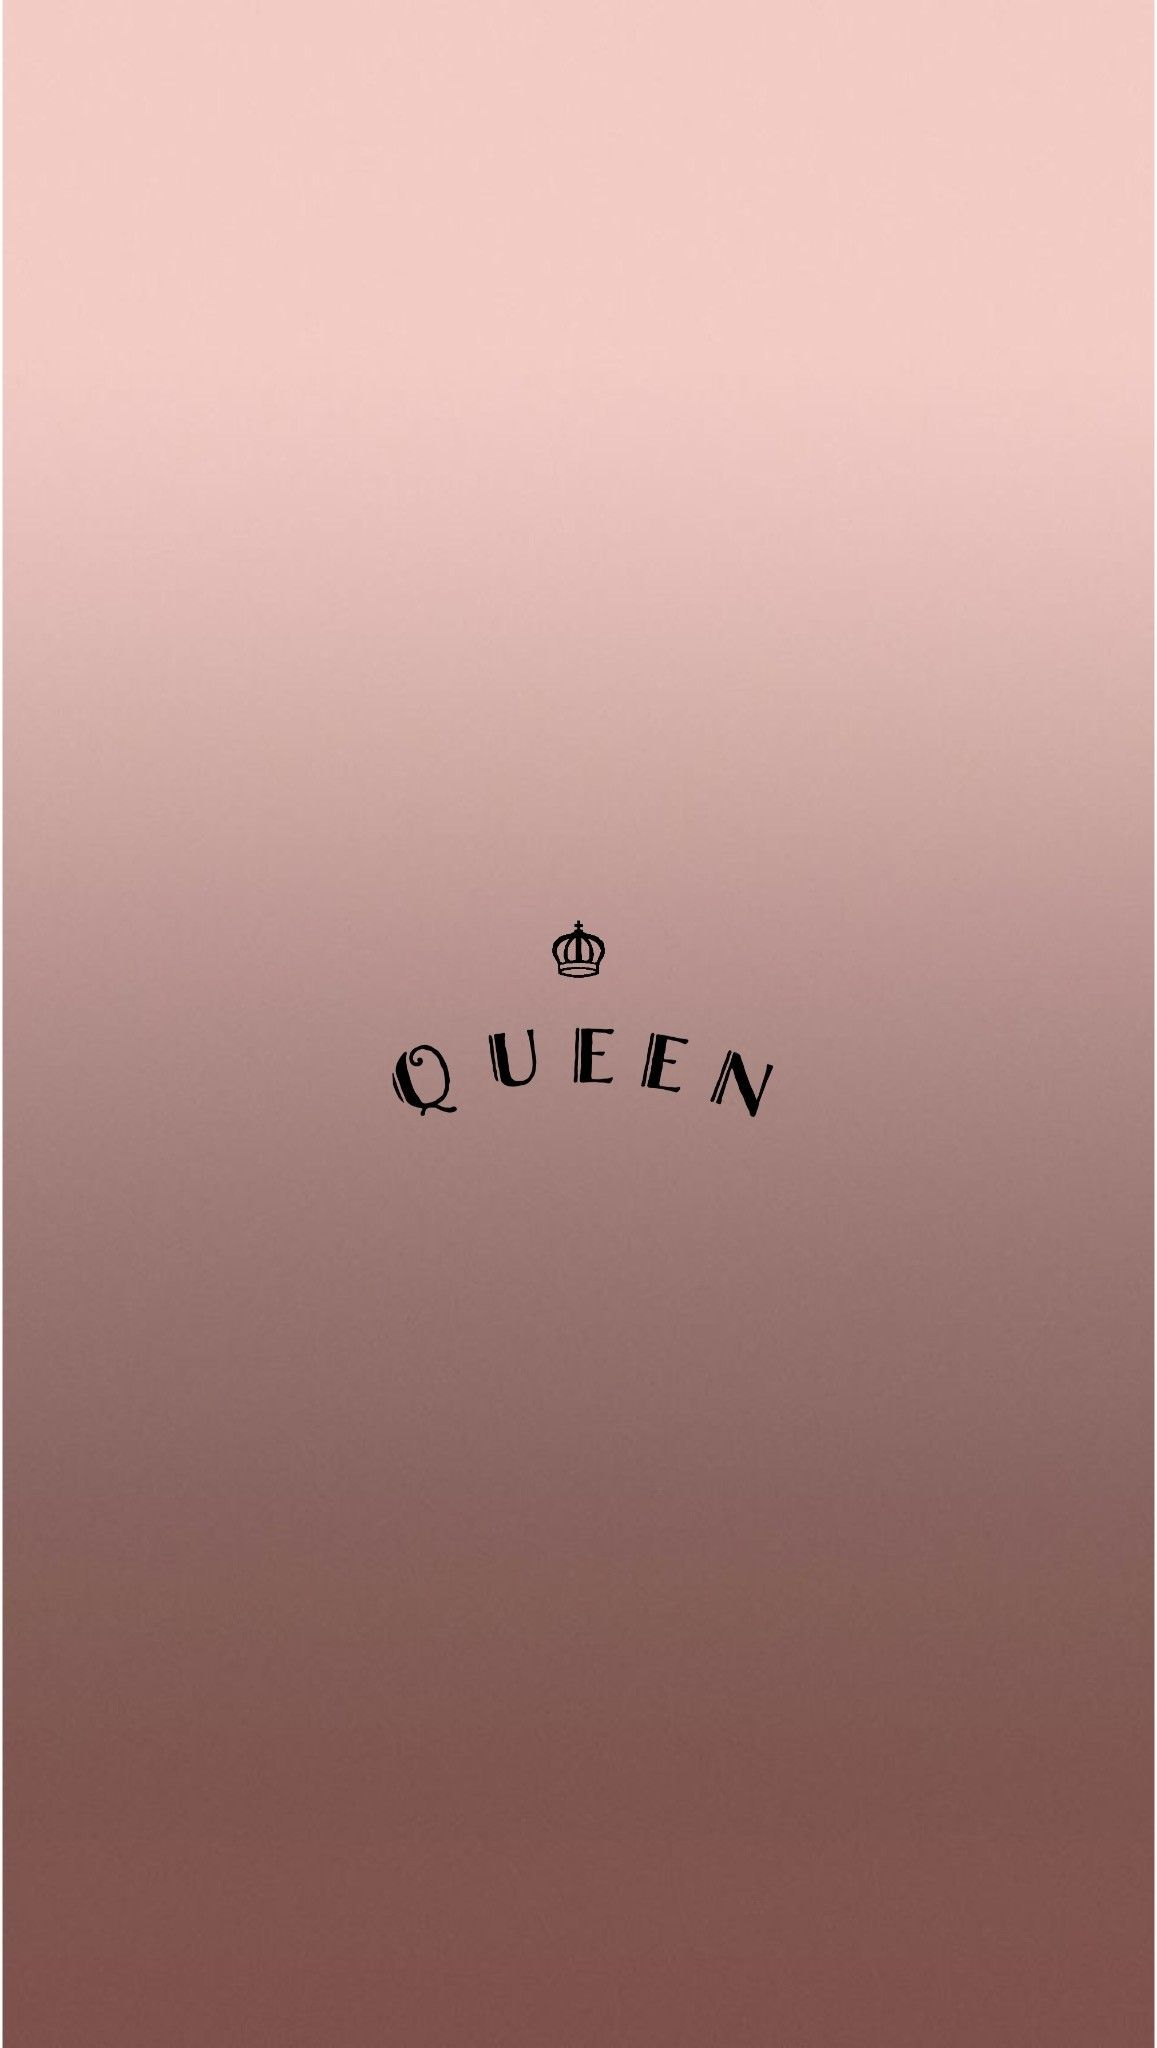 Rose Gold Tumblr Wallpapers Top Free Rose Gold Tumblr Backgrounds Wallpaperaccess